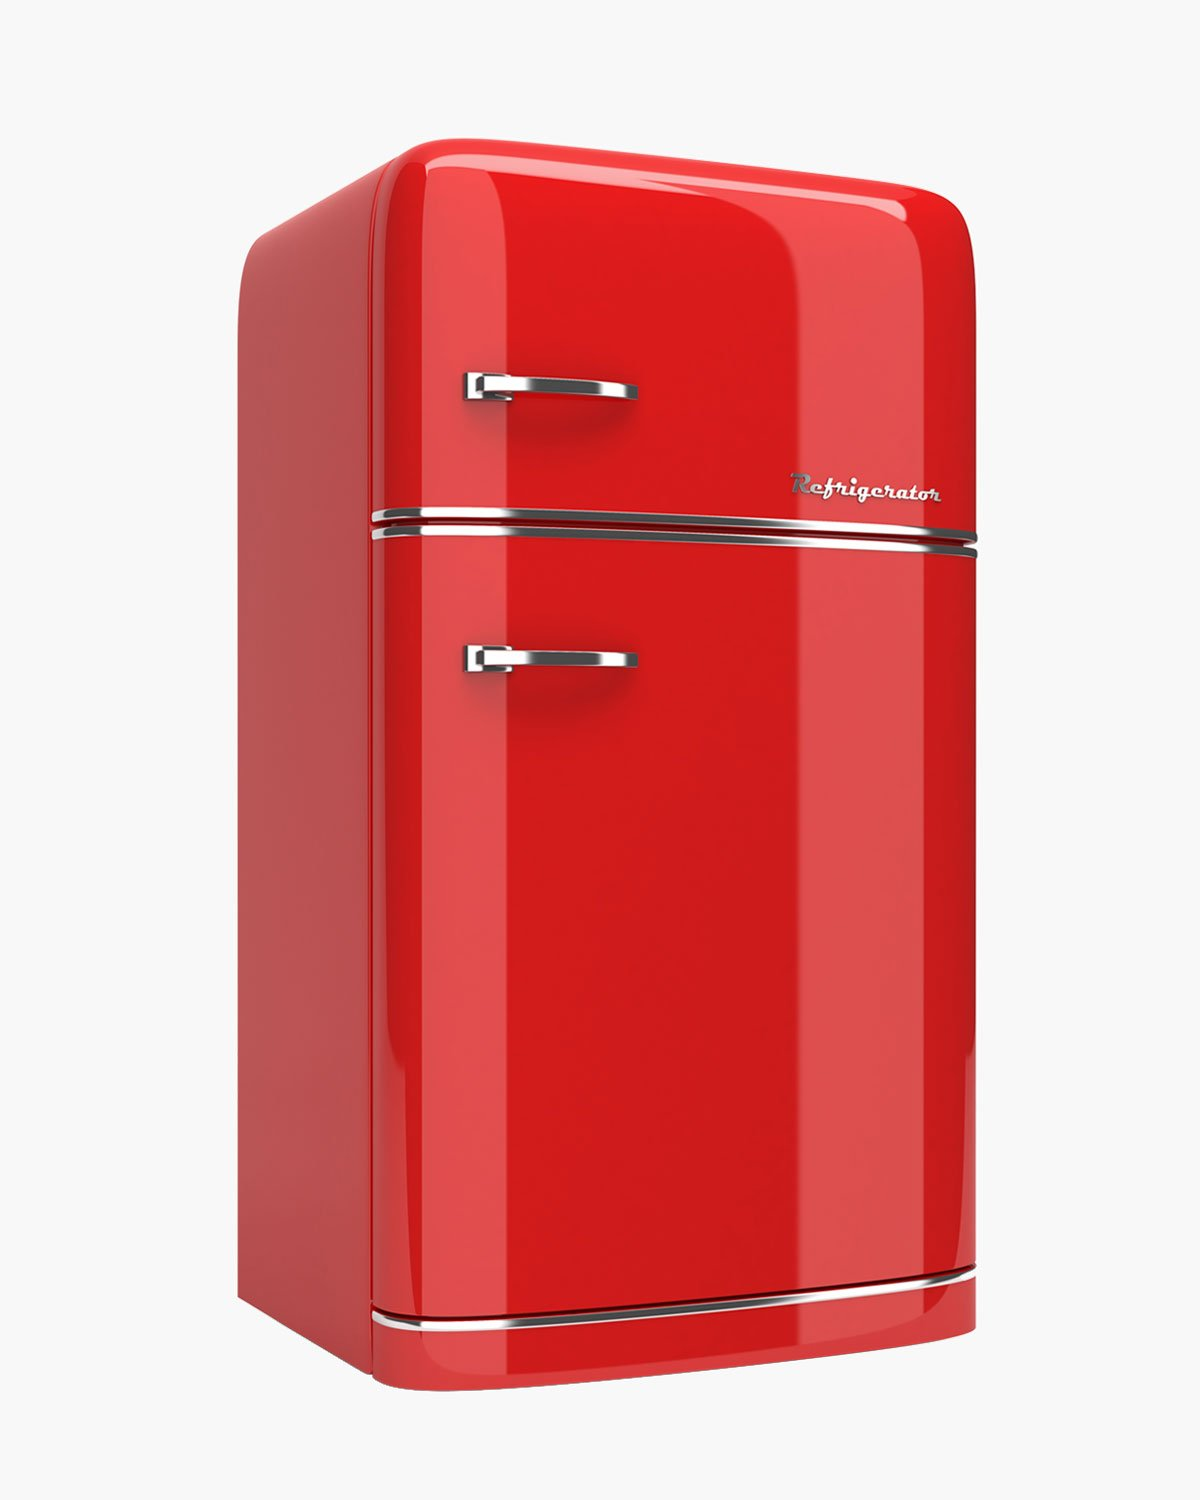 A red retro-style refrigerator for keeping our cold kitchen 100 recipes cool.